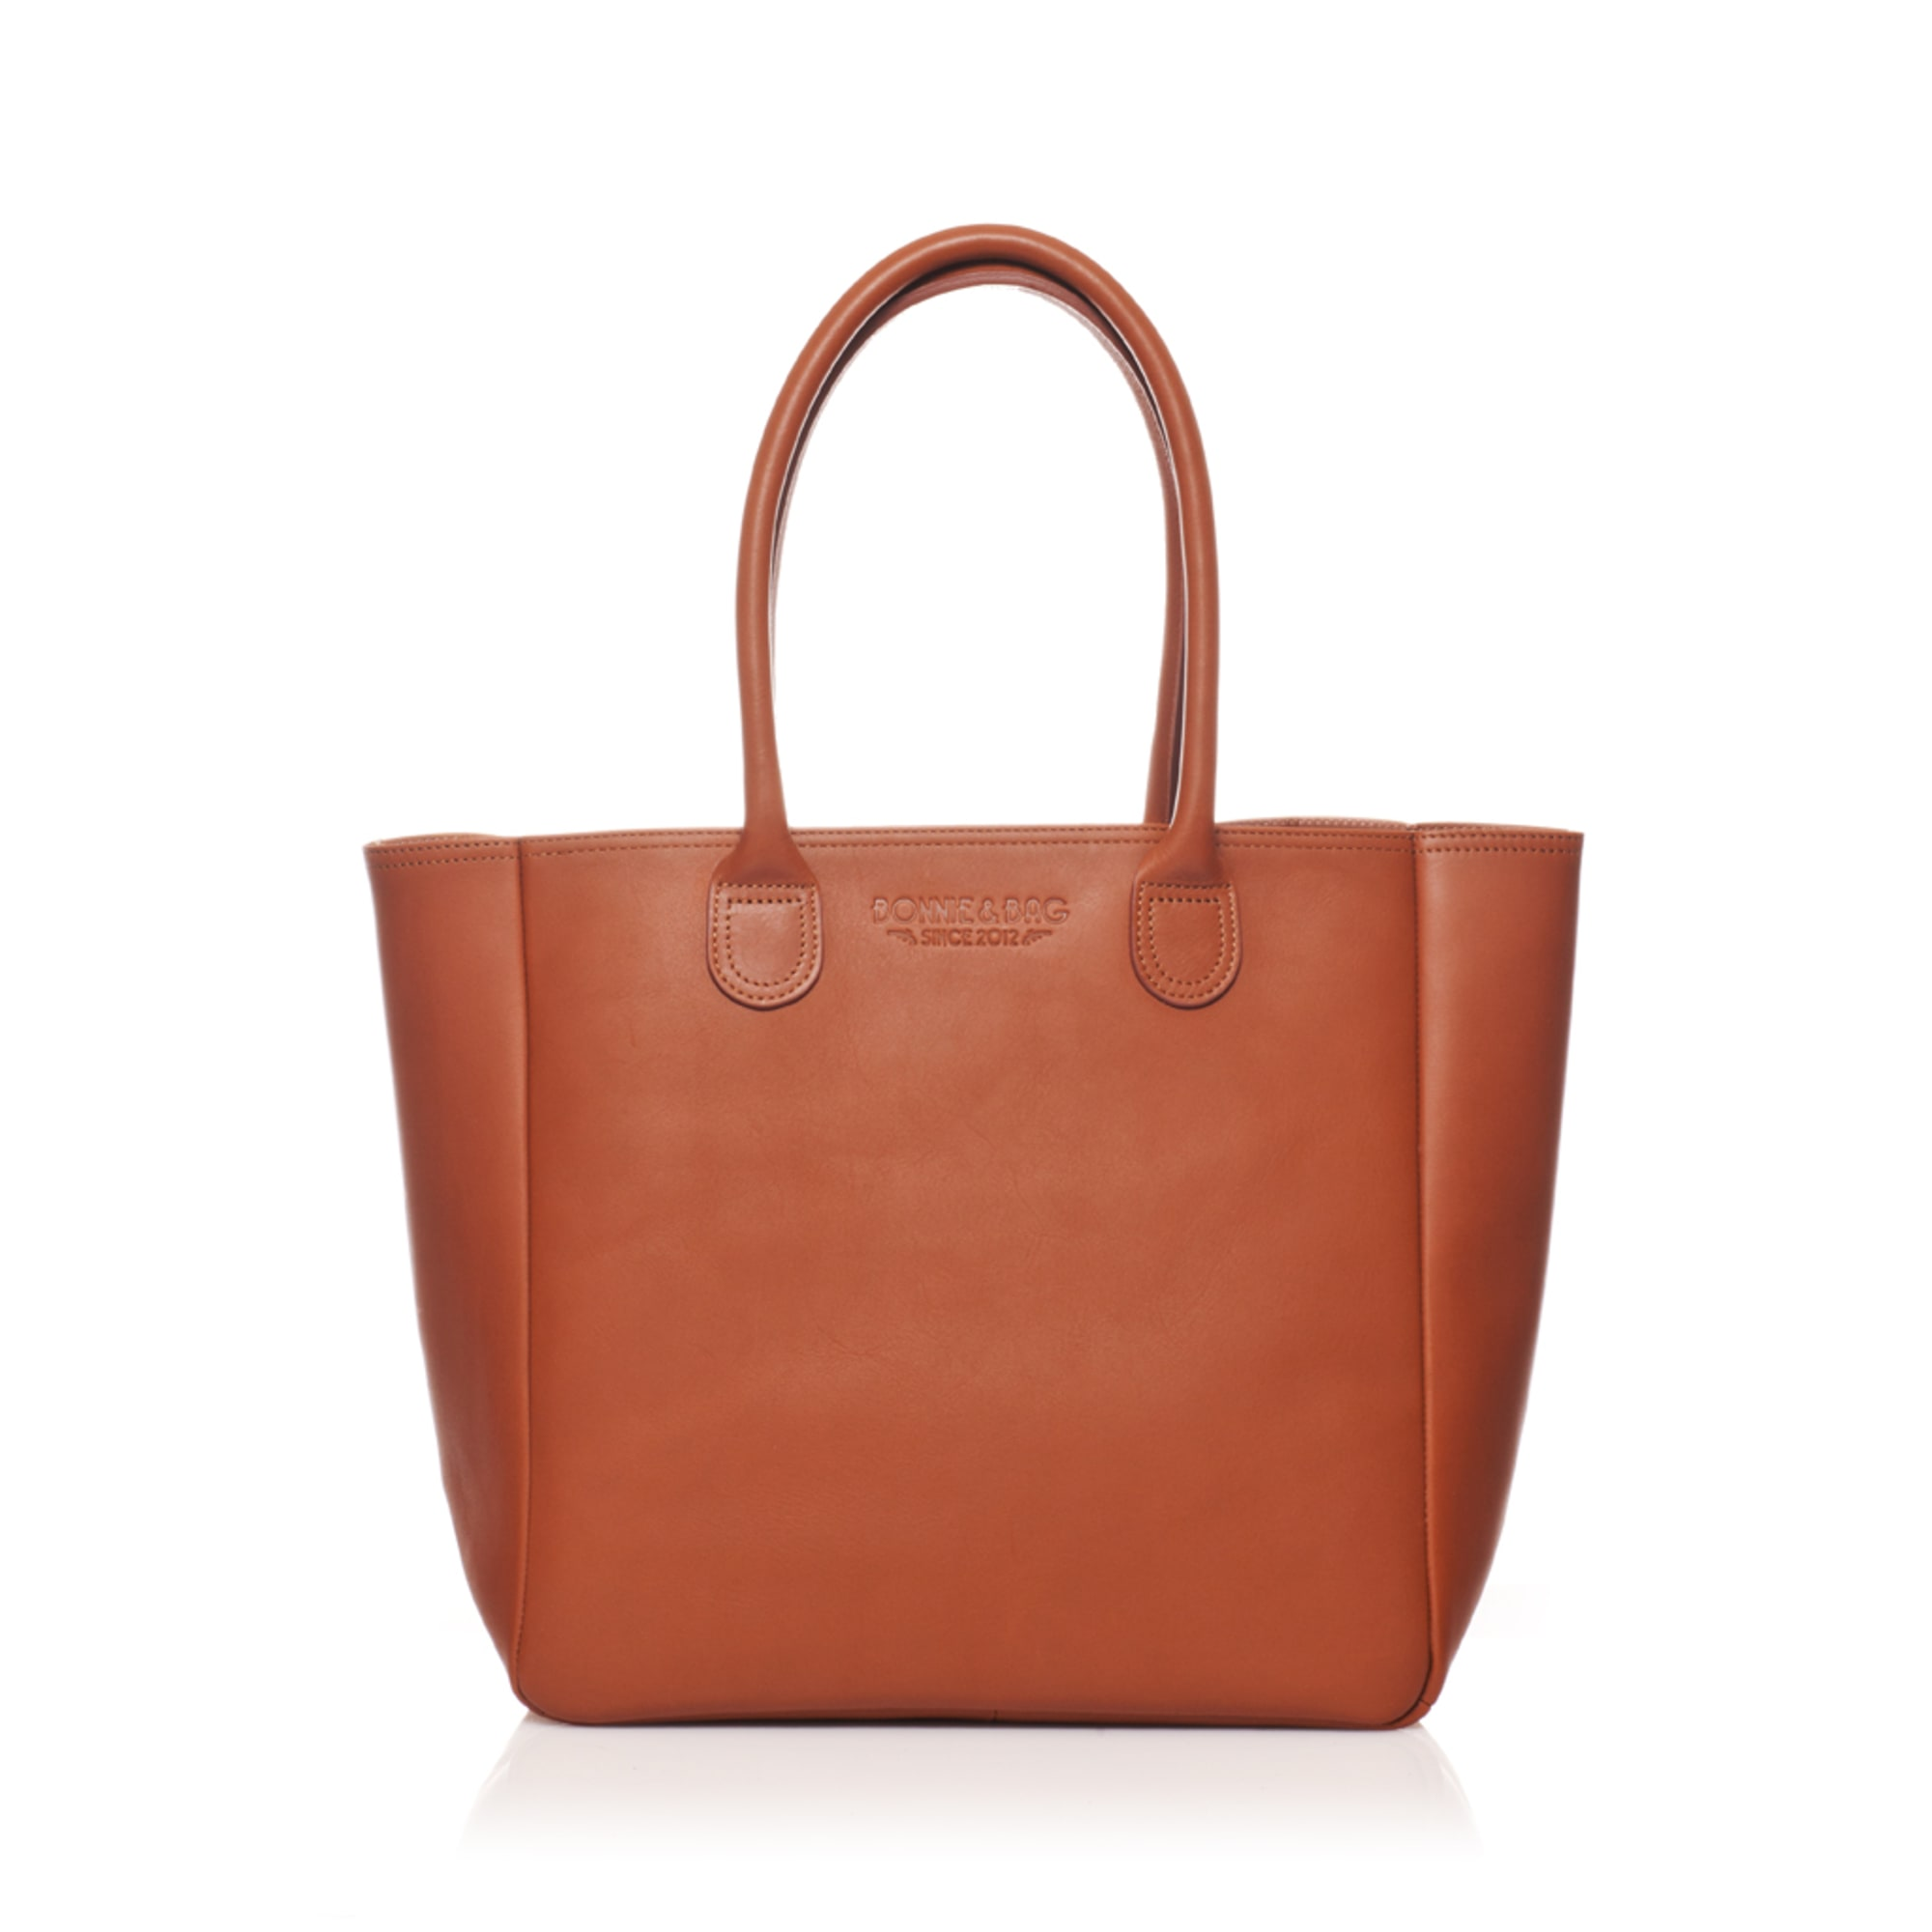 Sac à main en cuir BONNIE AND BAG doré vendu par Salema126939 - 6672887 09f34c2bf2c